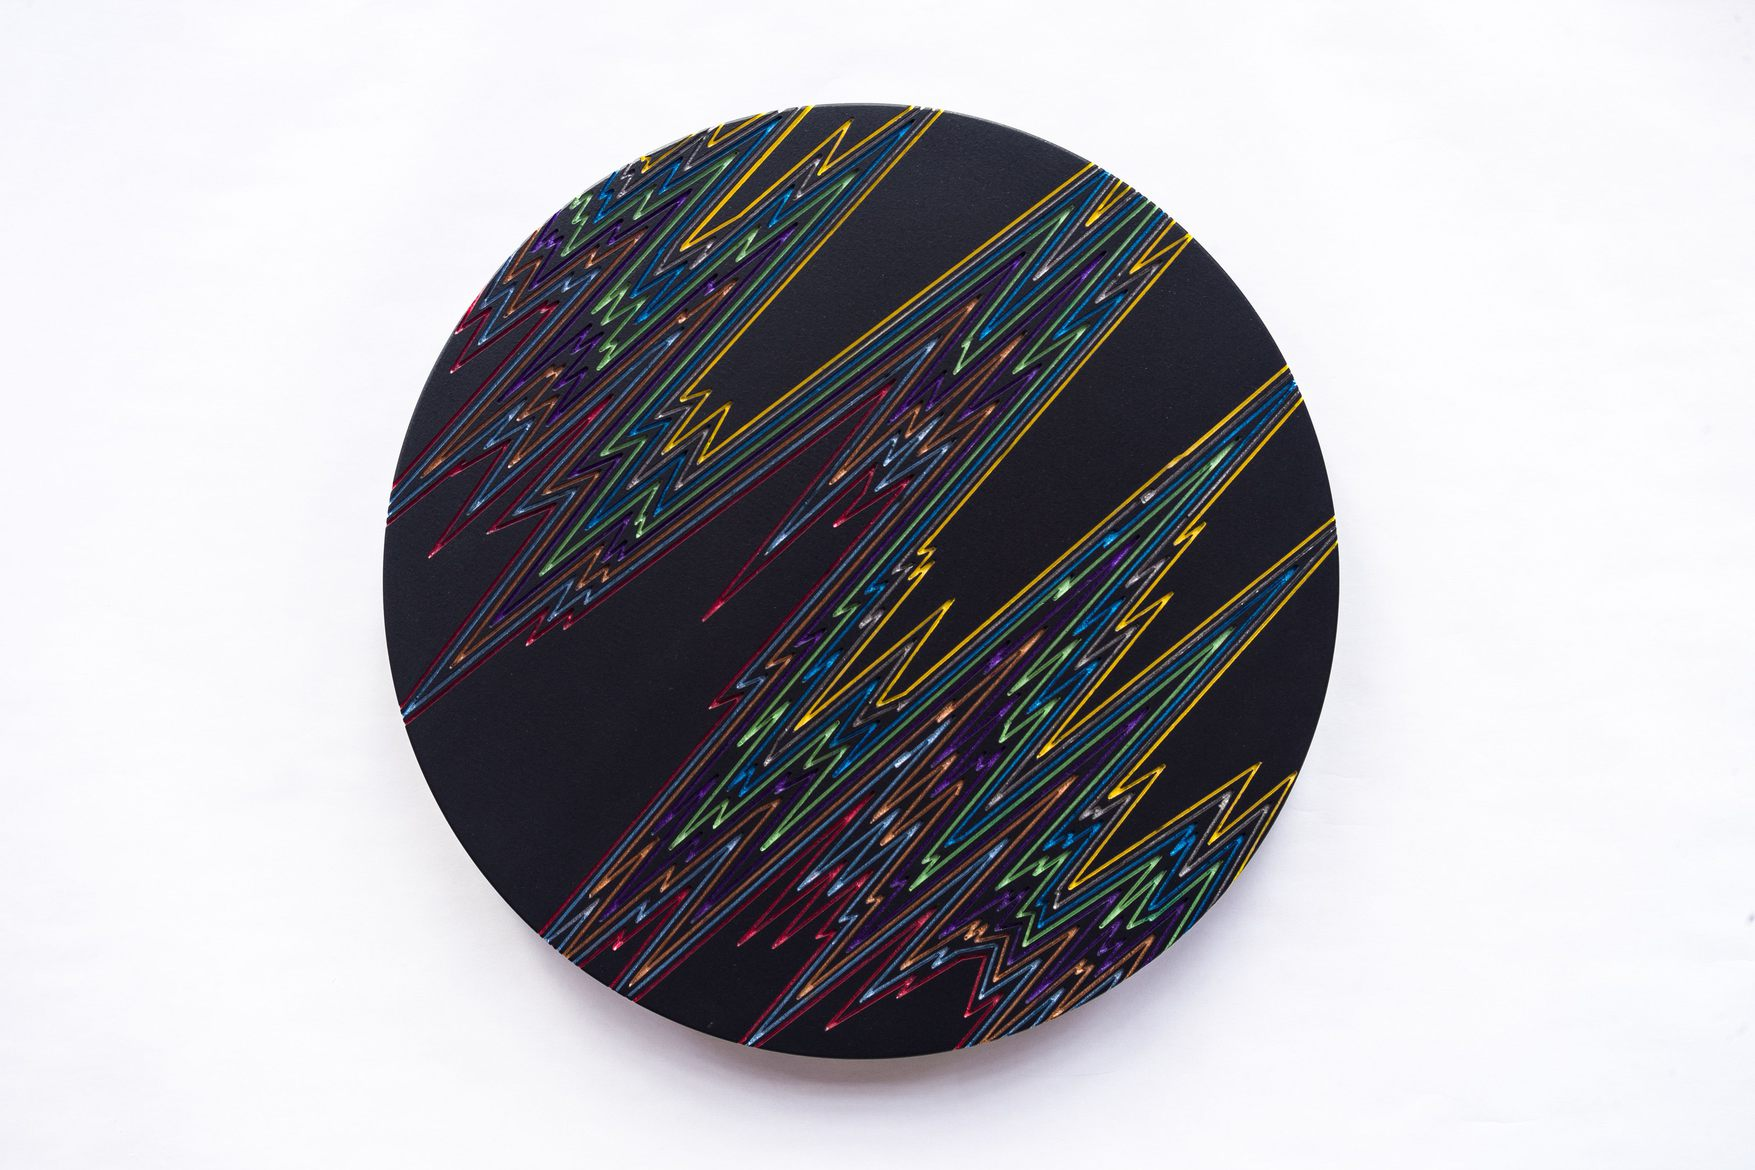 'INNER SPACE SERIES #1', 2015, Freehand Routed MDF, acrylic metallic paints, UV clear lacquer, 37 cm diameter, wall x 4 cm.